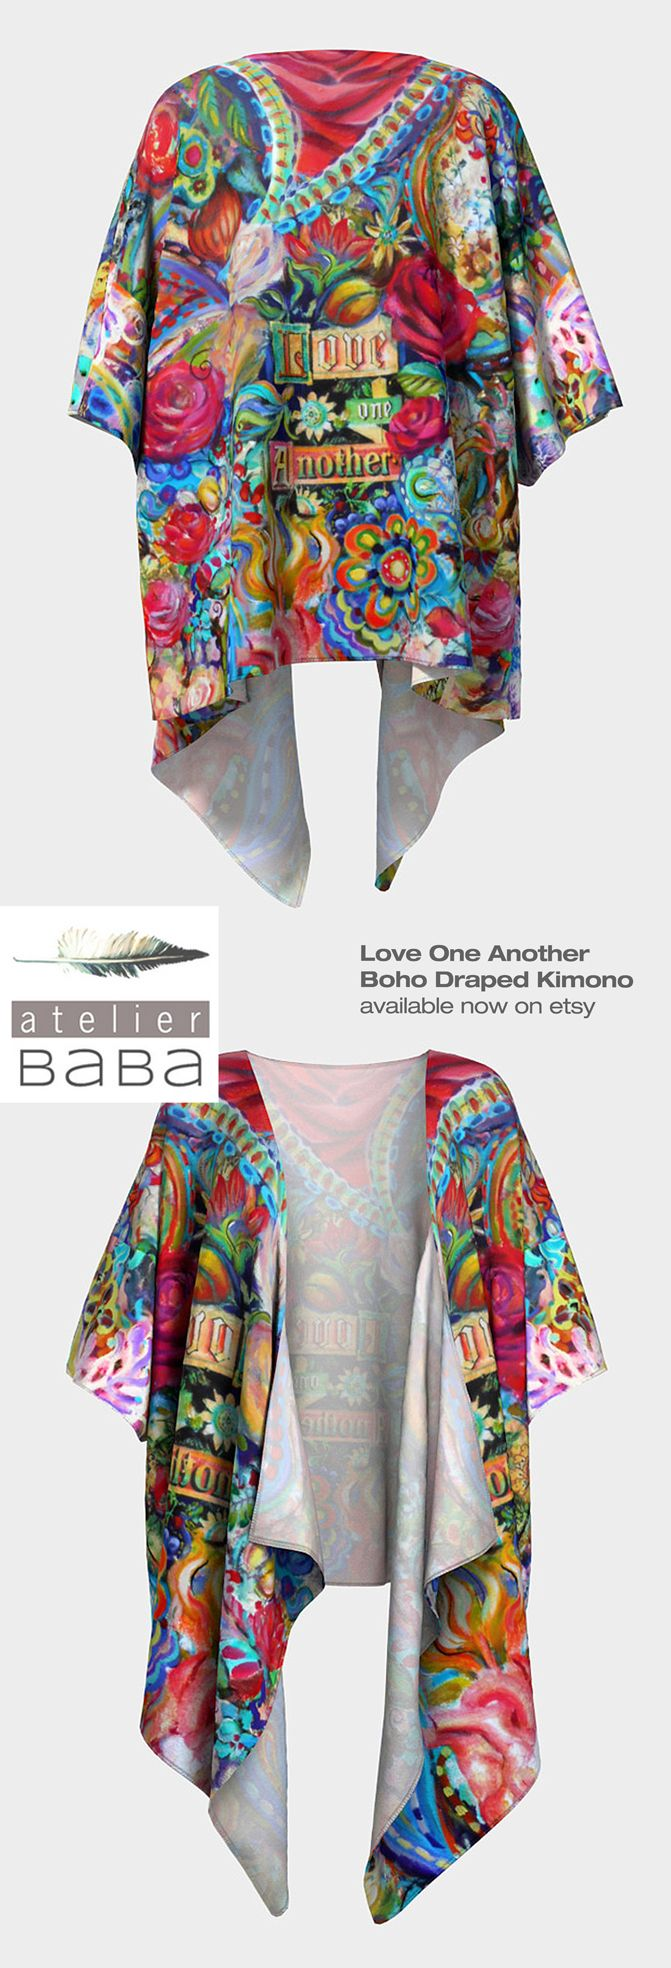 Love One Another Boho - Draped Kimono by AtelierBaba - Your choice of silky knit or poly chiffon fabric - available on etsy